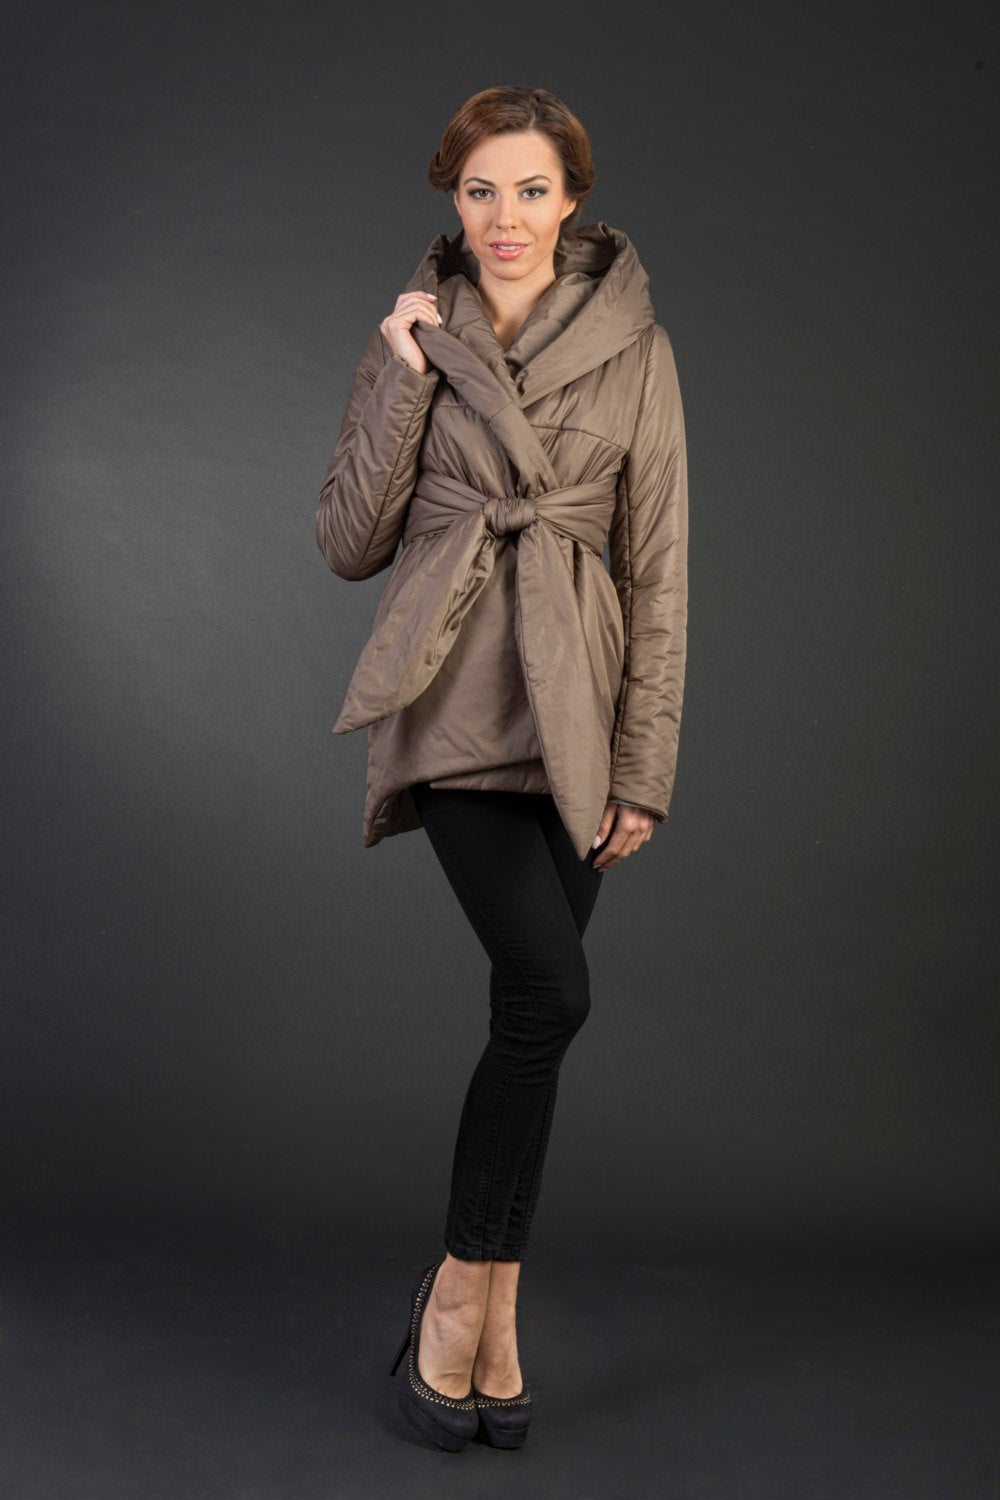 Maria Beige Women's Warm Stylish Water Resistant Short Jacket With Large Hood